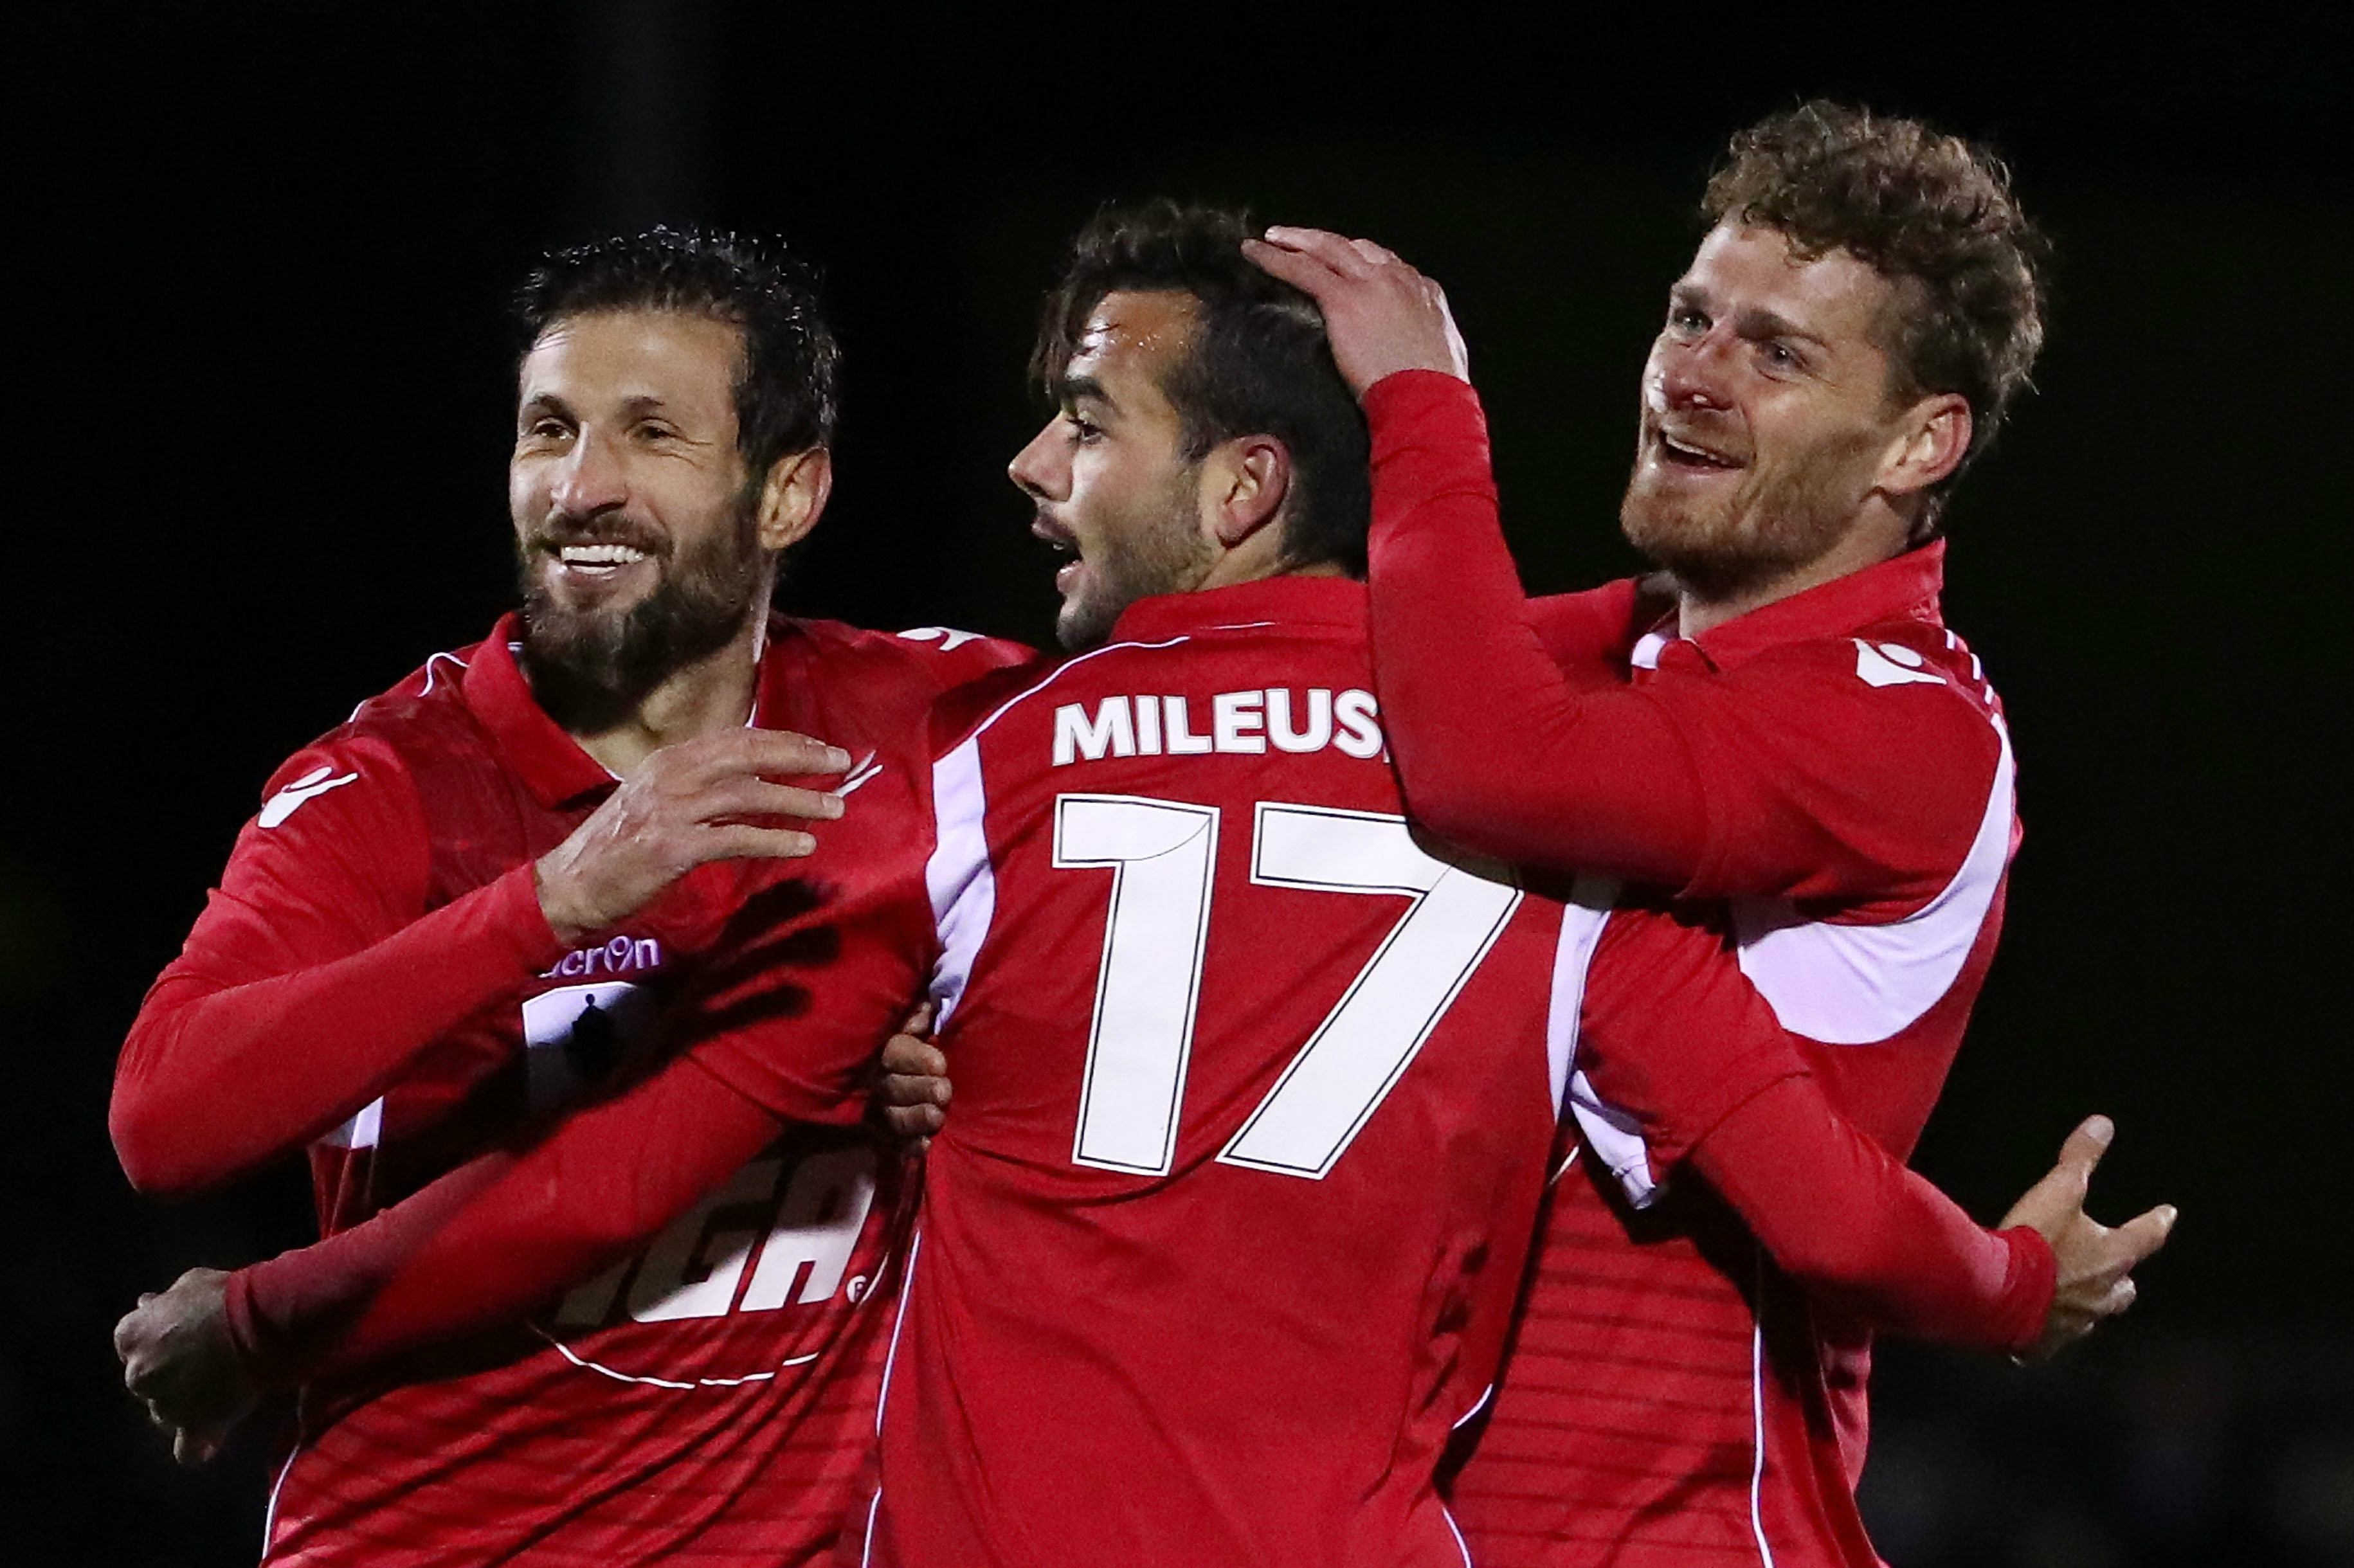 Adelaide United players celebrate a goal during the Westfield FFA Cup.